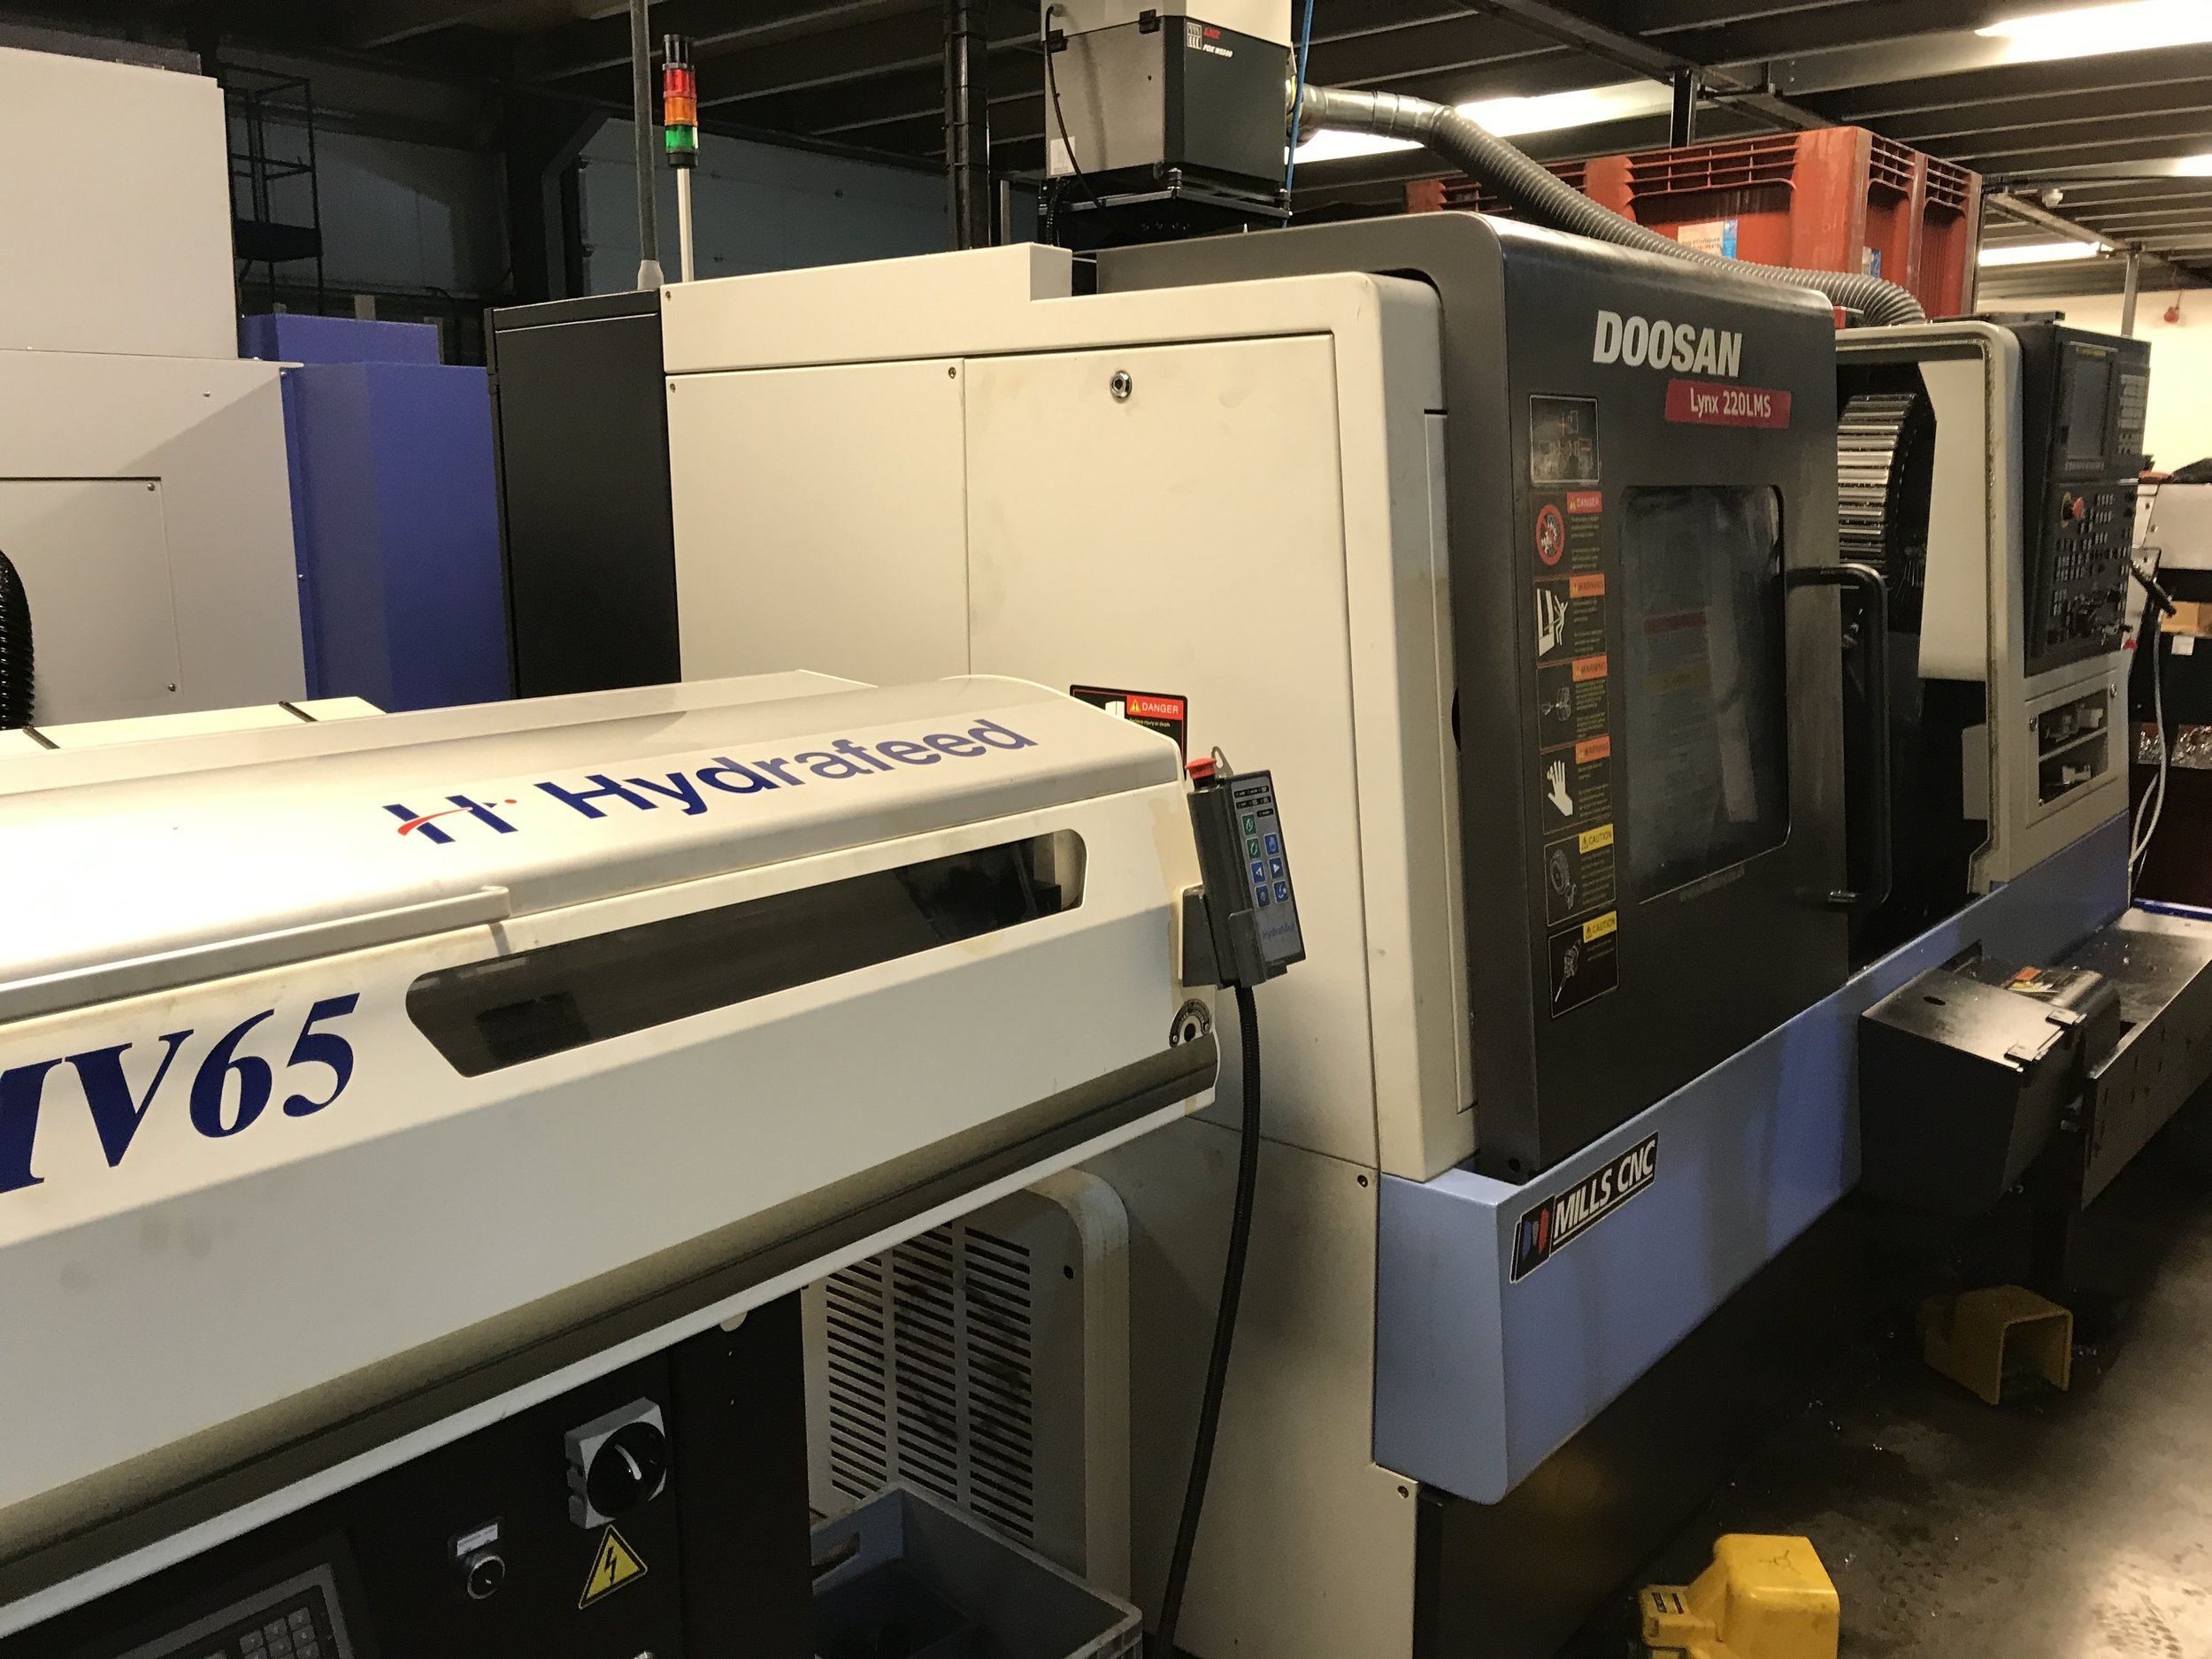 Doosan Lynx 220 Lathe - 65mm bar capacity driven tool lathe with automatic barfeeder and subspindle. High speed unmanned manufacturing of finished turned and milled parts from up to 65mm bar stock.We manufacture headsets, seat clamps and part finished blanks ready for the 5-axis machines.